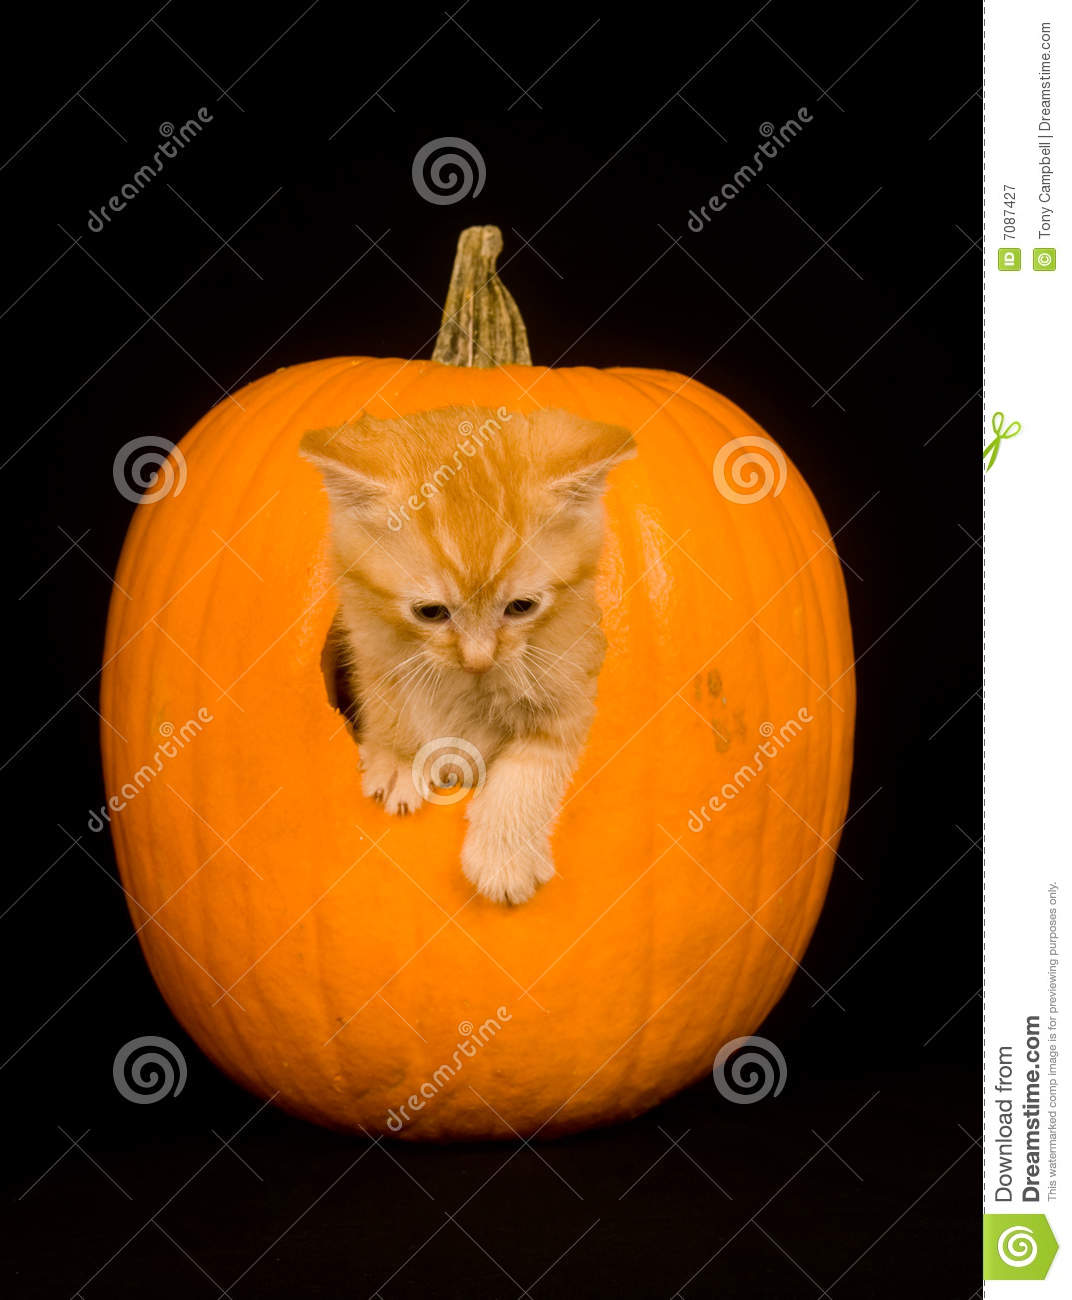 Kitten peeking out of pumpkin royalty free stock for Cat carved into pumpkin